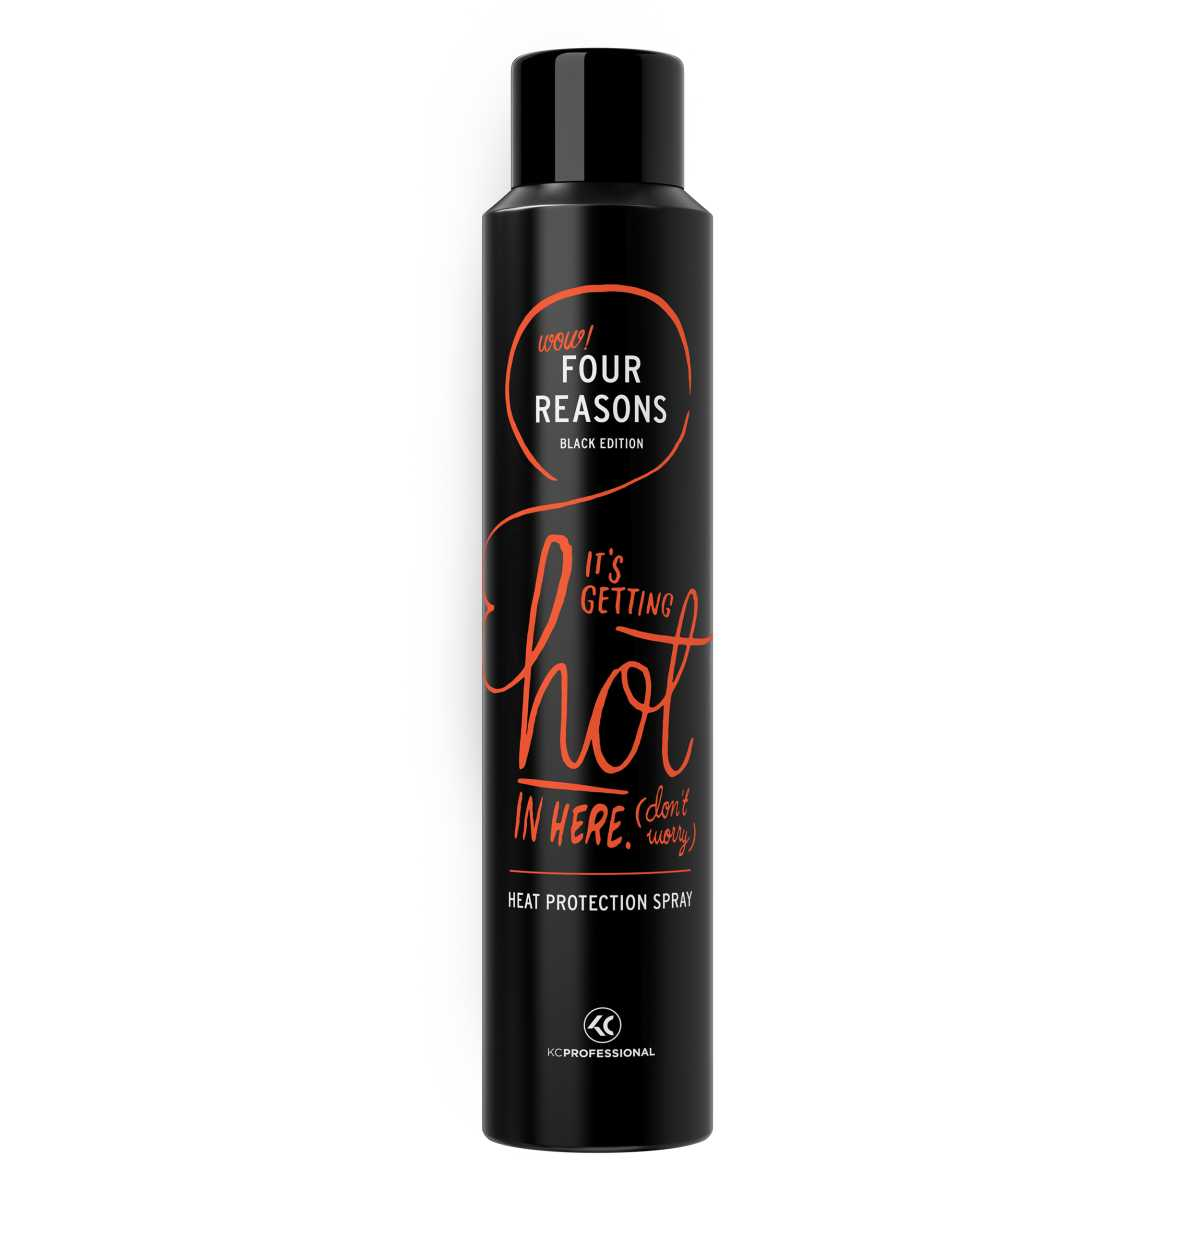 Four-Reasons-Black-Edition-Heat-Protection-Spray